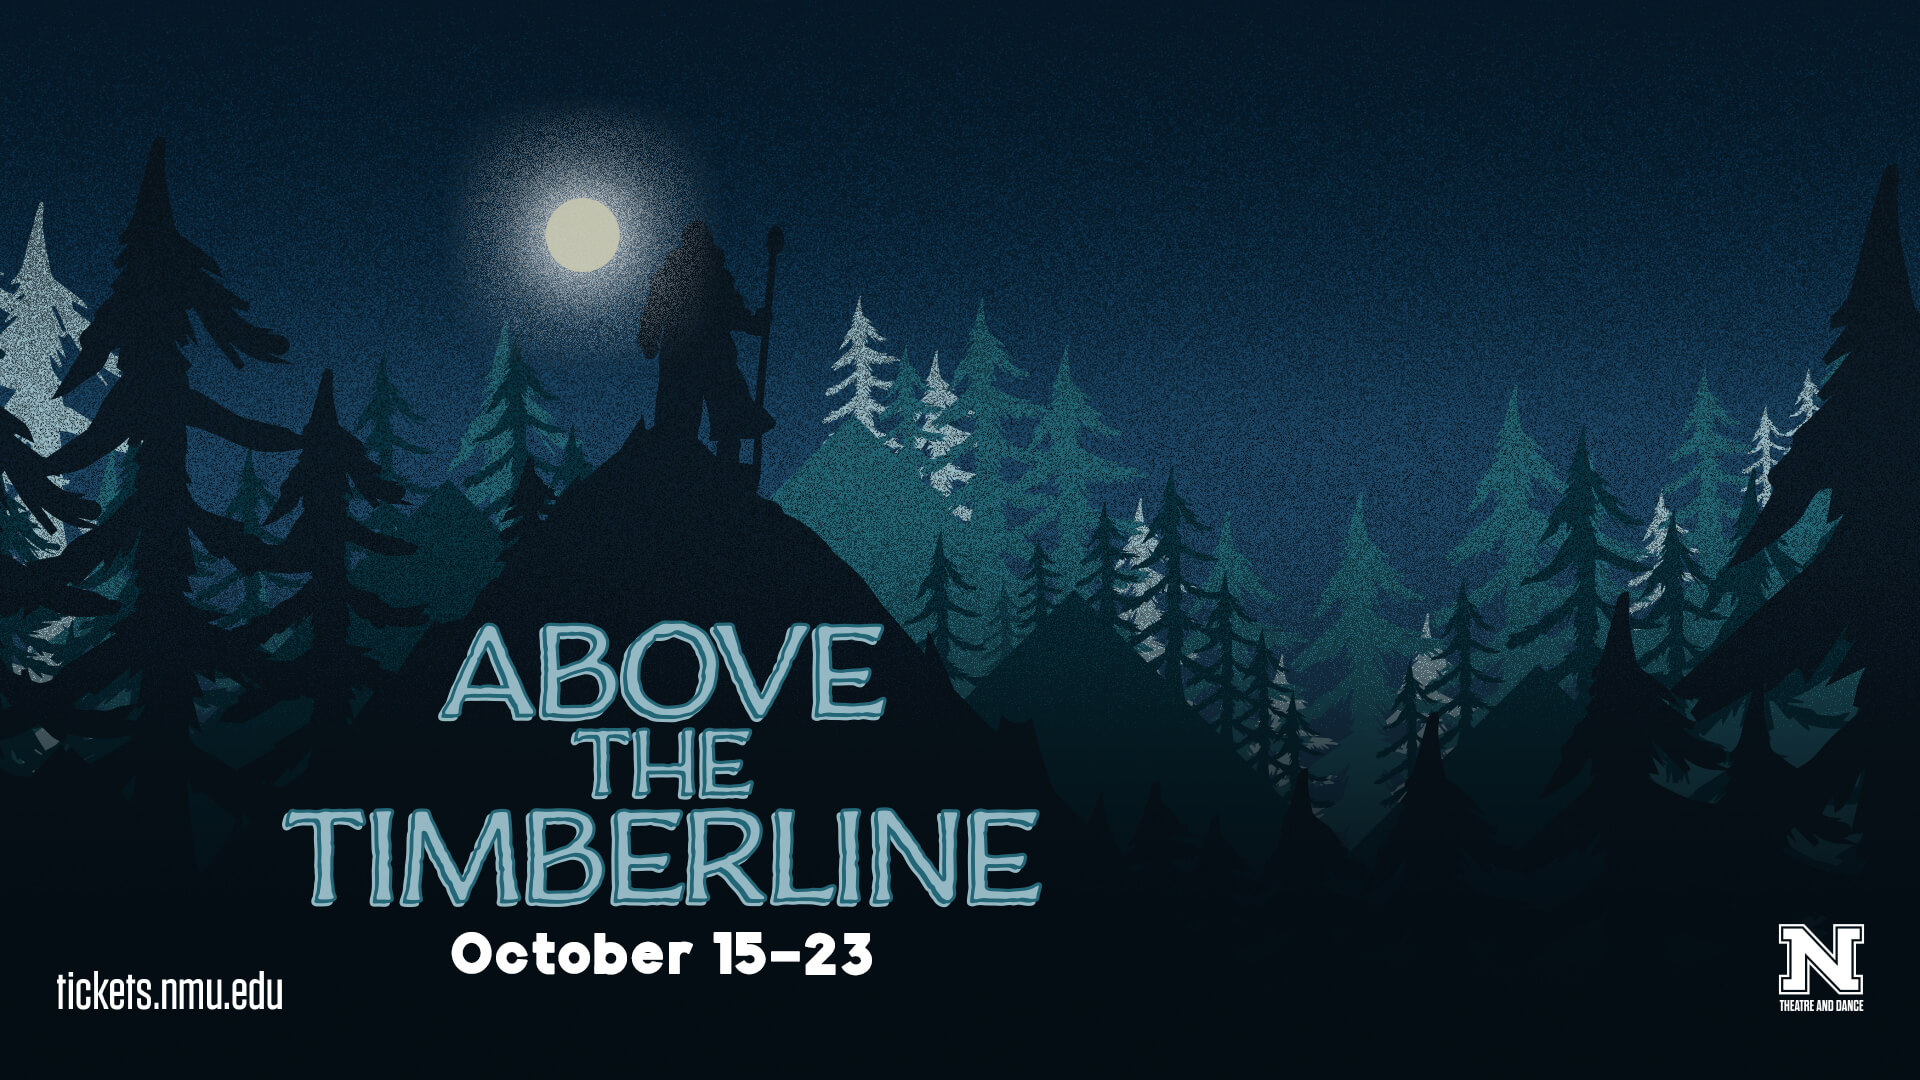 Above the Timber Line October 15-23rd. Go to tickets.nmu.edu